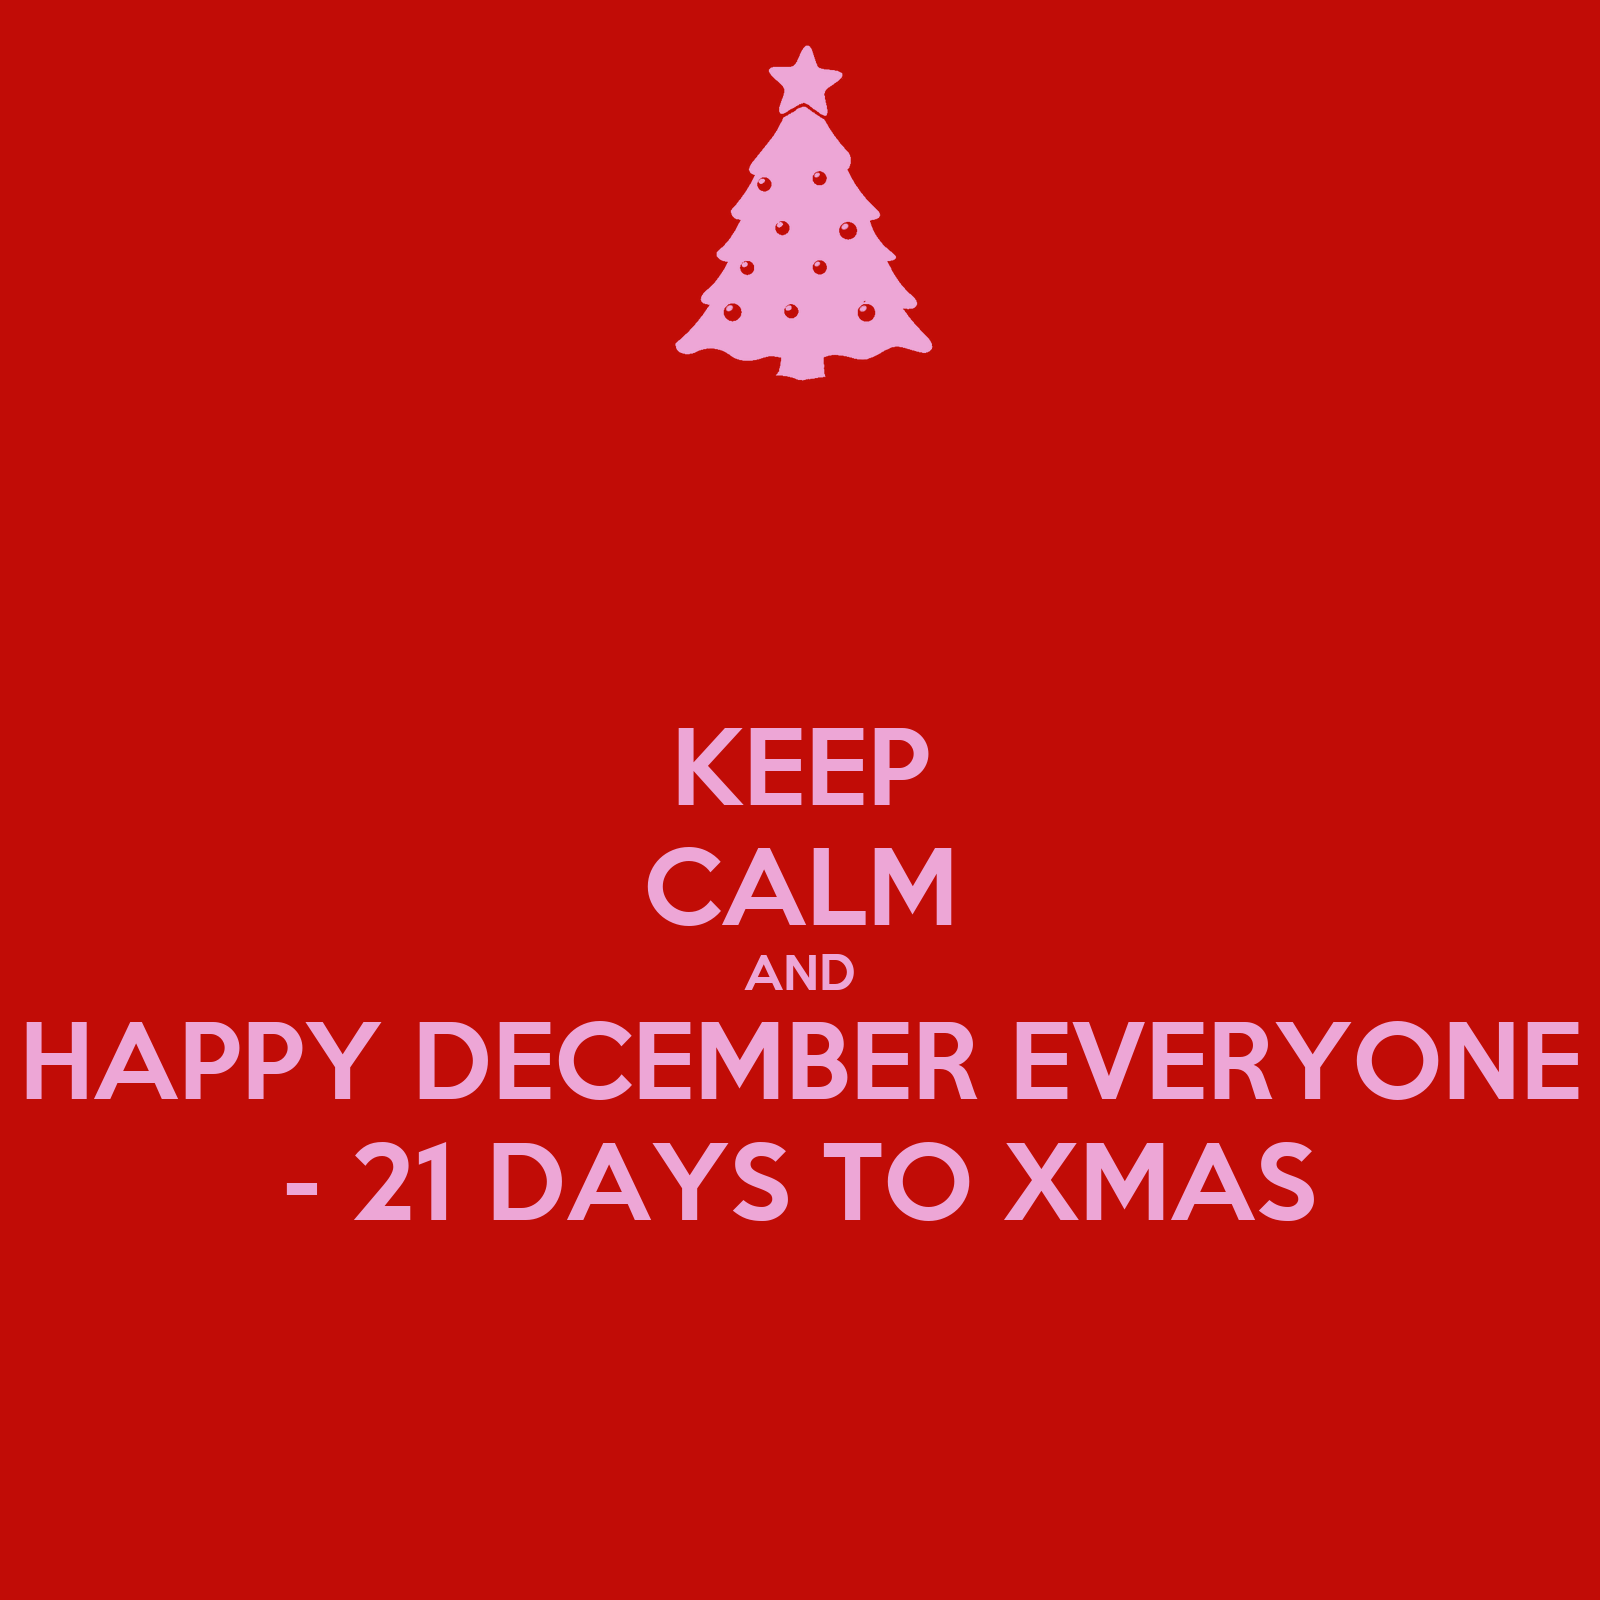 keep-calm-and-happy-december-everyone-21-days-to-xmas.png